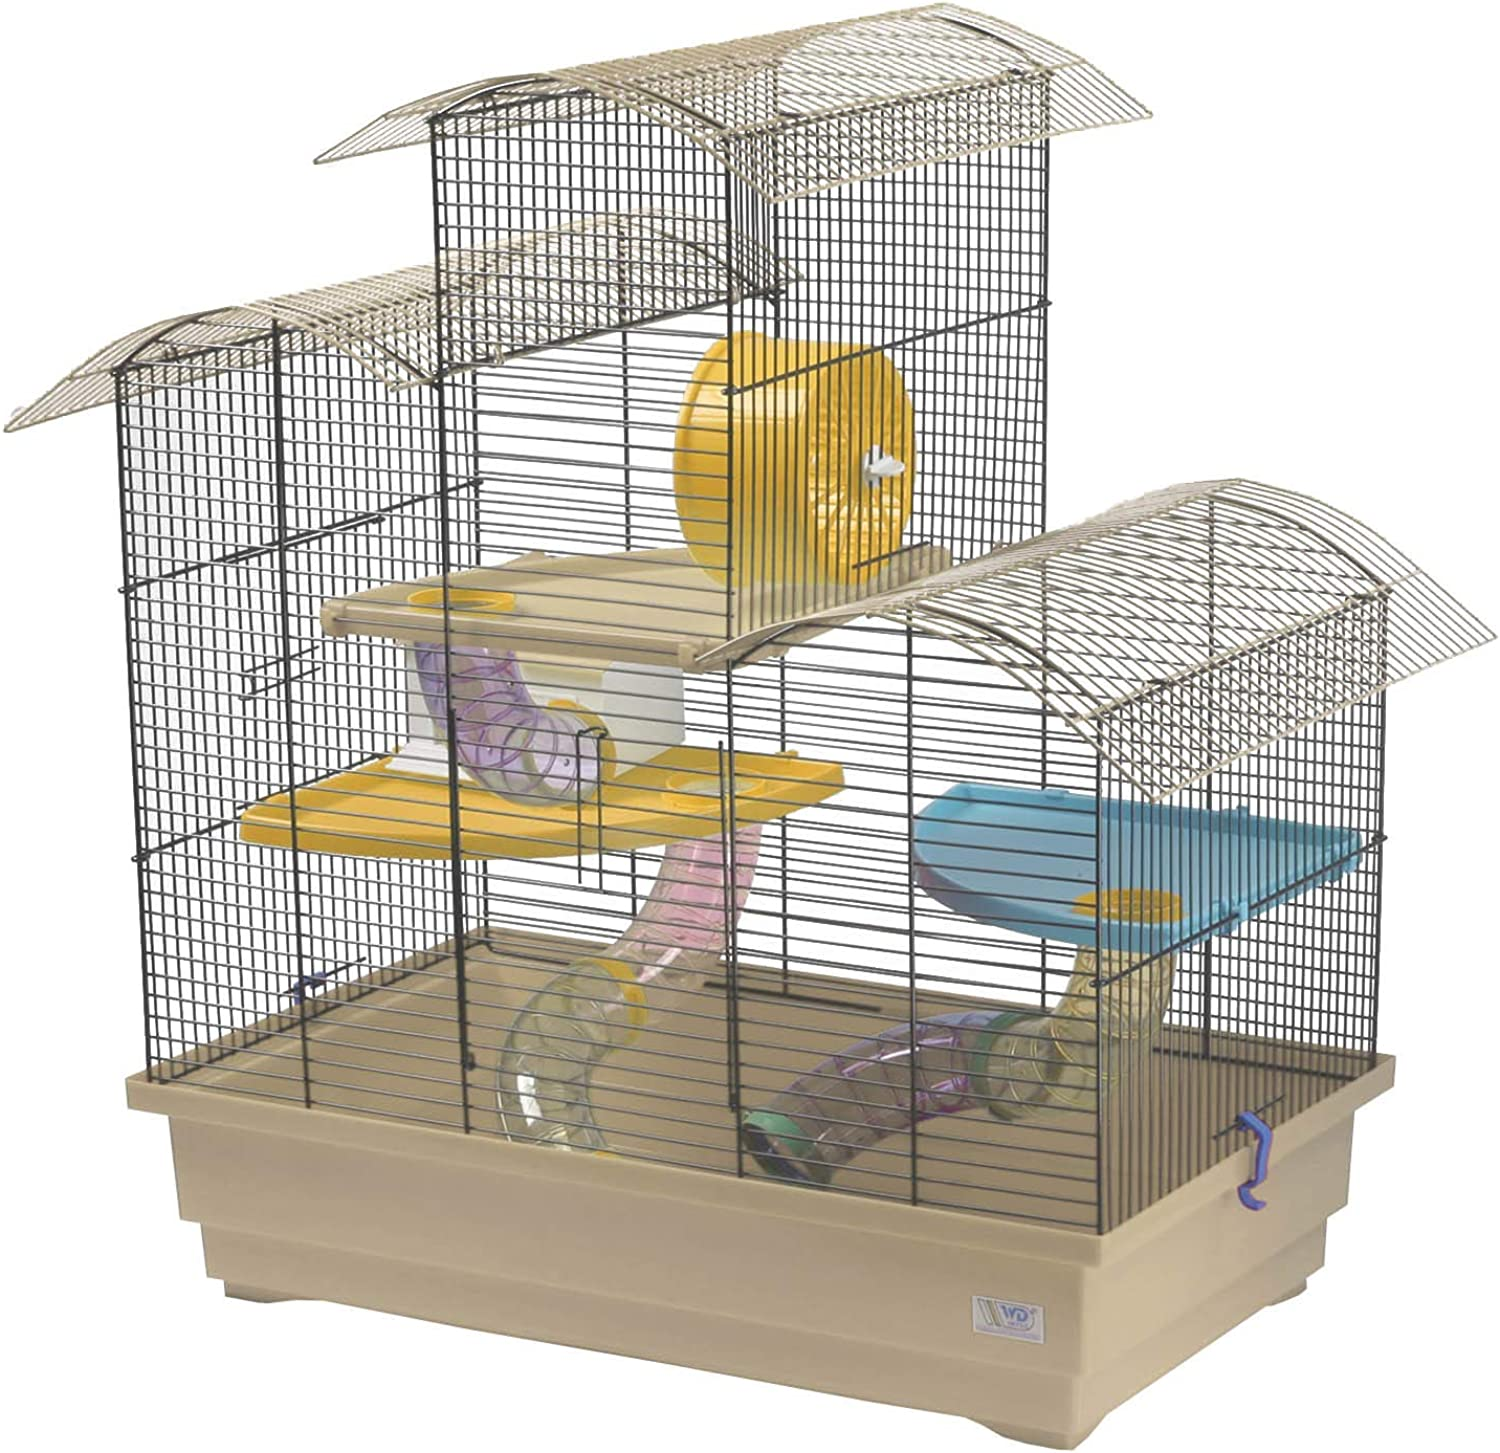 Decorwelt Hamster Cages Beige Exterior Dimensions 70 x 43 x 70 cm Plastic Rodent Cage with Accessories